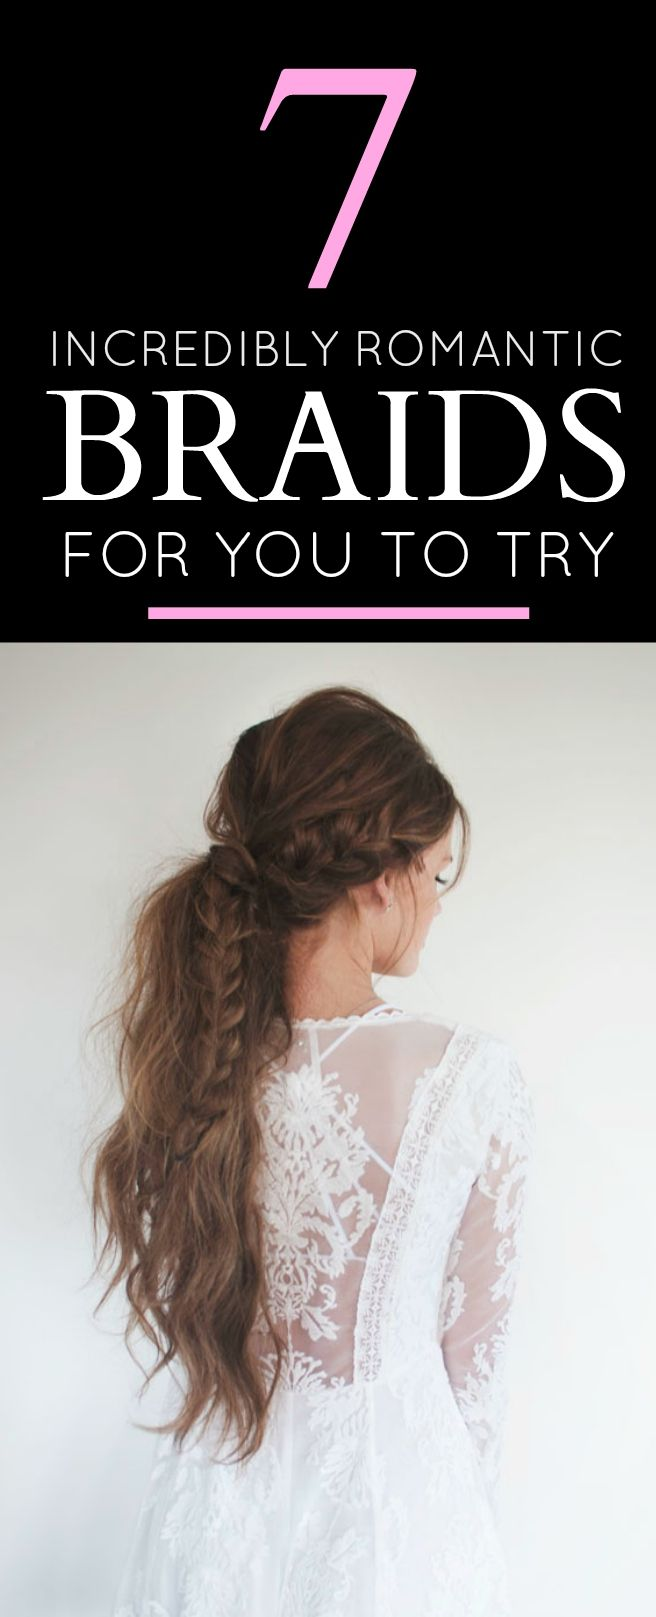 Love a good braided hairstyle? So do we! Check out these 7 awesomely romantic braid hair tutorials you can try today.